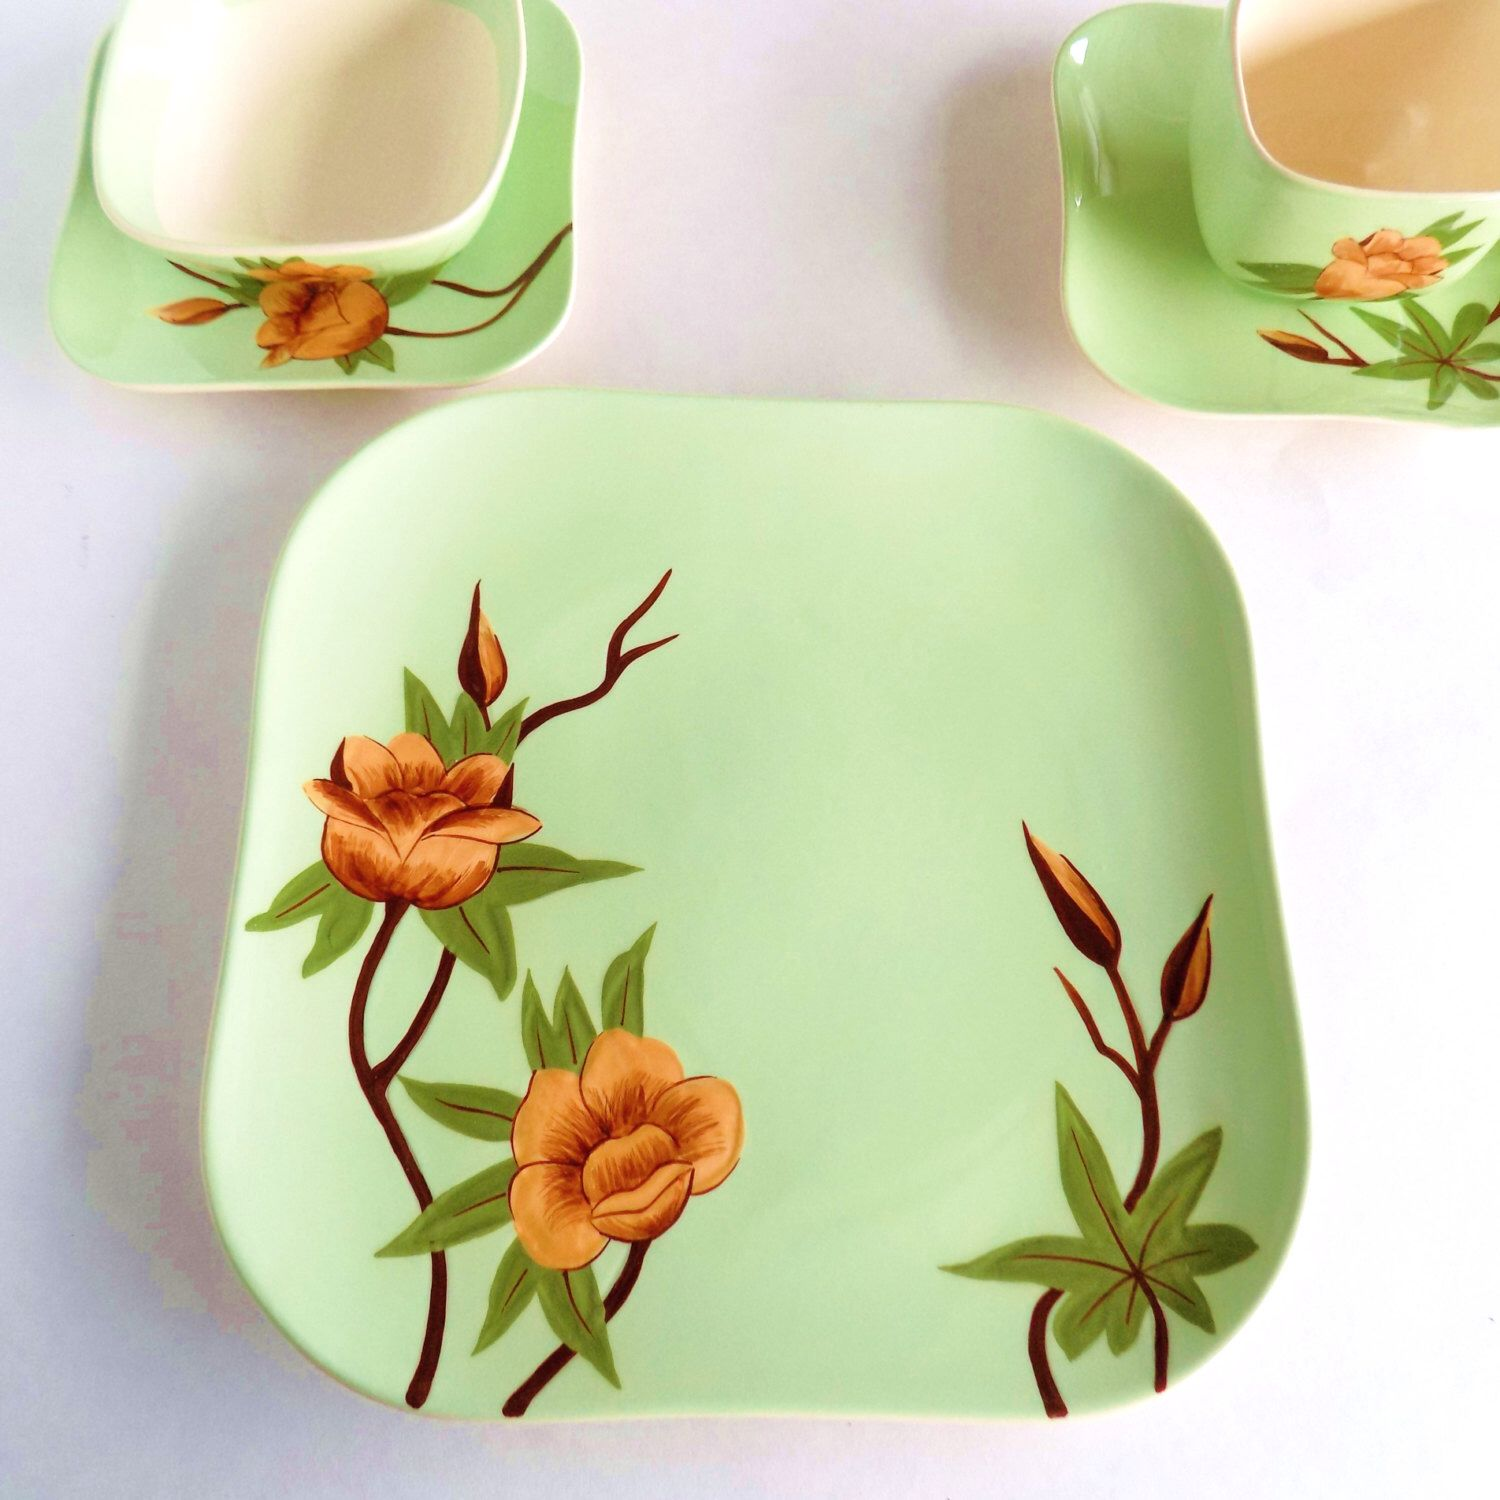 """Rose"" dinnerware pattern on green background, c. 1950 by ..."